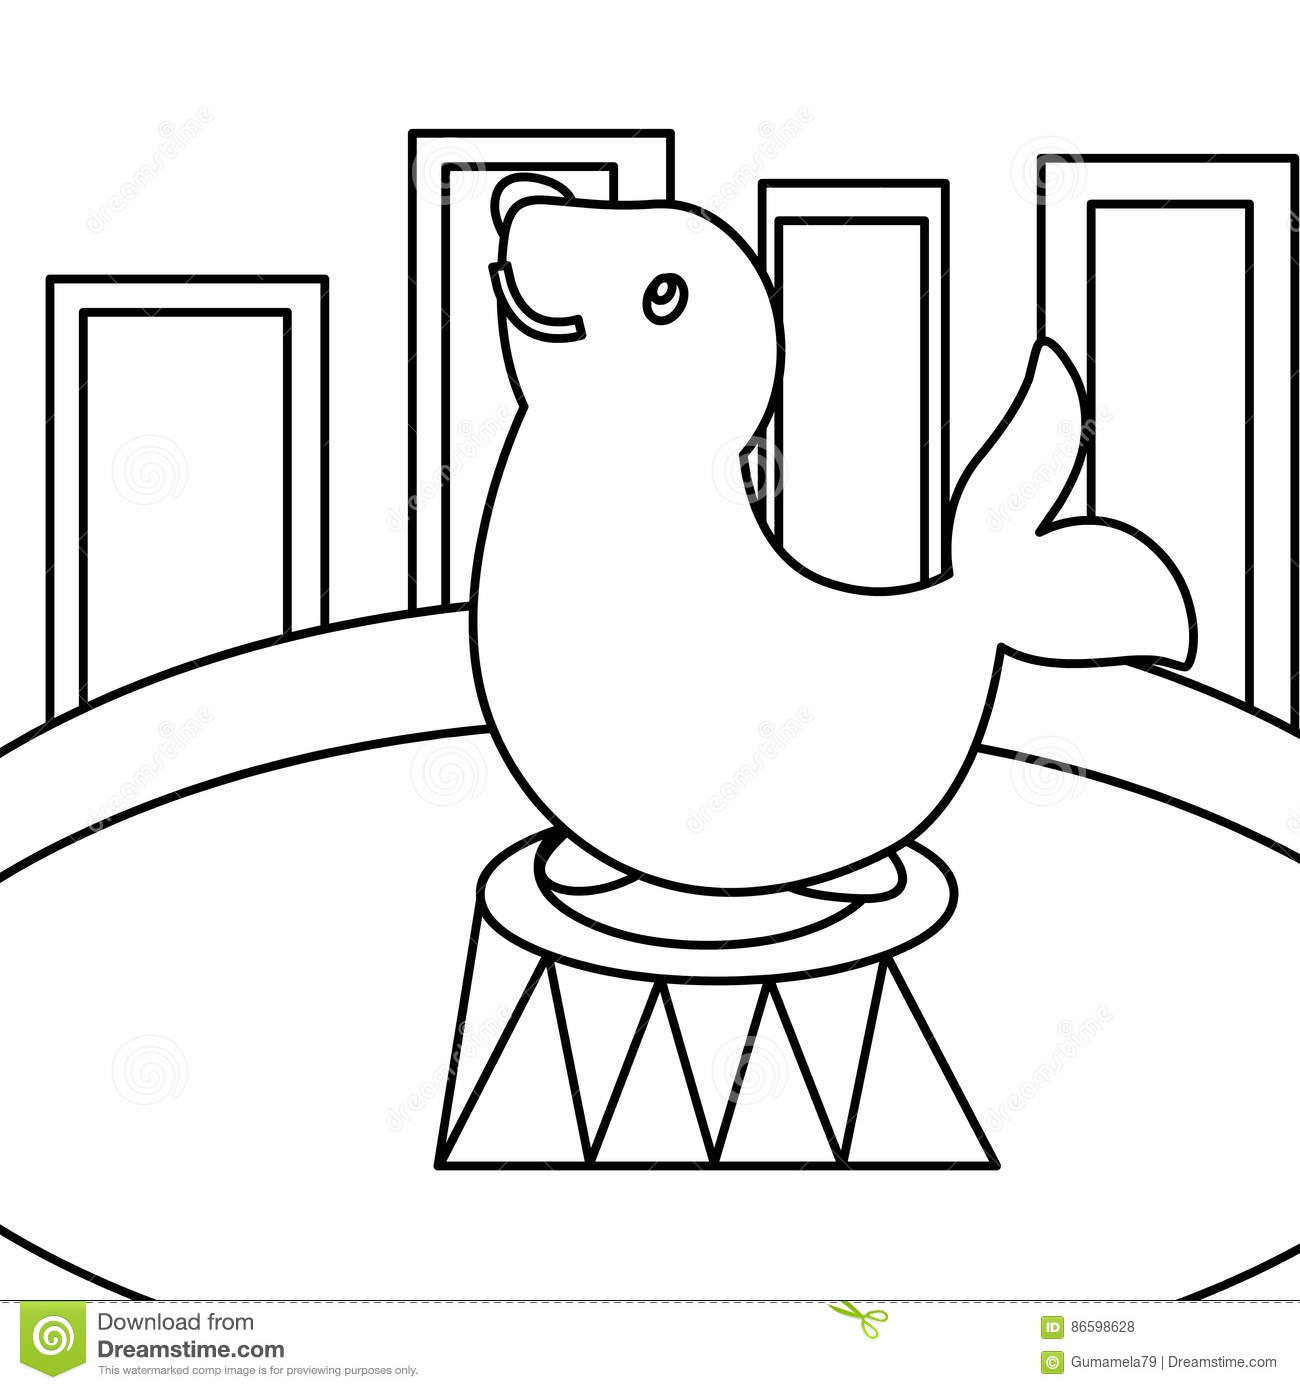 Circus seal coloring page stock illustration. Illustration of ...